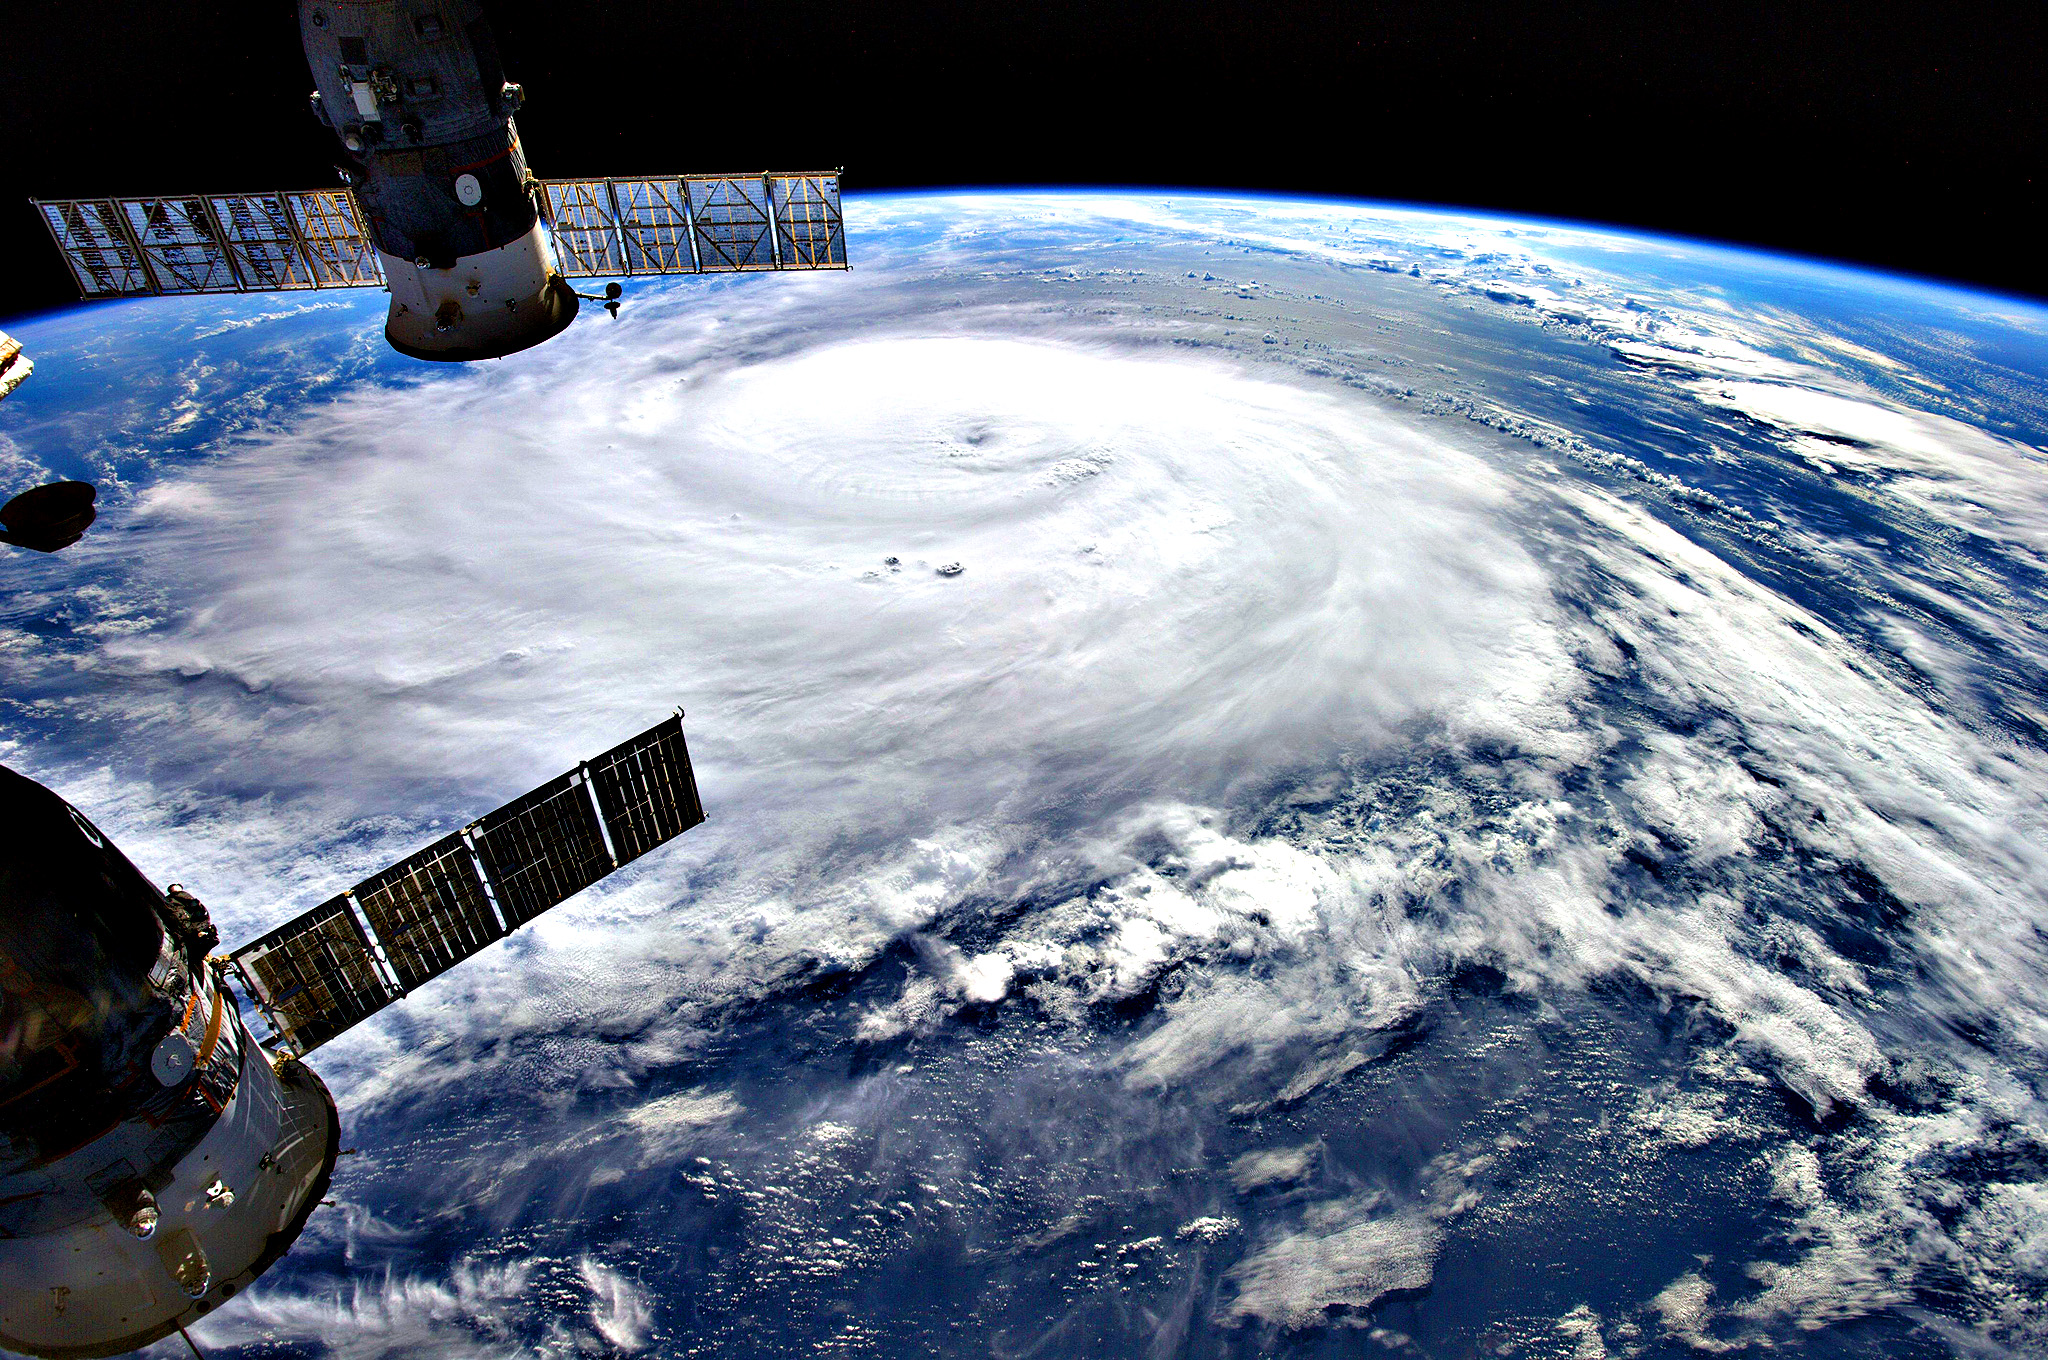 Hurricane Gonzalo was taken from the International Space Station by European Space Agency astronaut Alexander Gerst.  The resort island chain of Bermuda braced October 17, 2014 for a hit from Hurricane Gonzalo, forecast to produce flooding, strong winds and a life-threatening storm surge. The capital Hamilton was eerily quiet as people retreated to the safety of their homes. Schools, businesses, grocery stores and government offices all closed early Thursday, and many people boarded up the windows of their homes and placed sandbags outside in preparation. As of early Friday, Gonzalo's winds were whirling at 125 miles (200 kilometers) per hour, with even stronger gusts, the US National Hurricane Center said. Gonzalo has already killed one person in the Caribbean and triggered a hurricane warning for the British overseas territory, which is home to around 60,000 people.